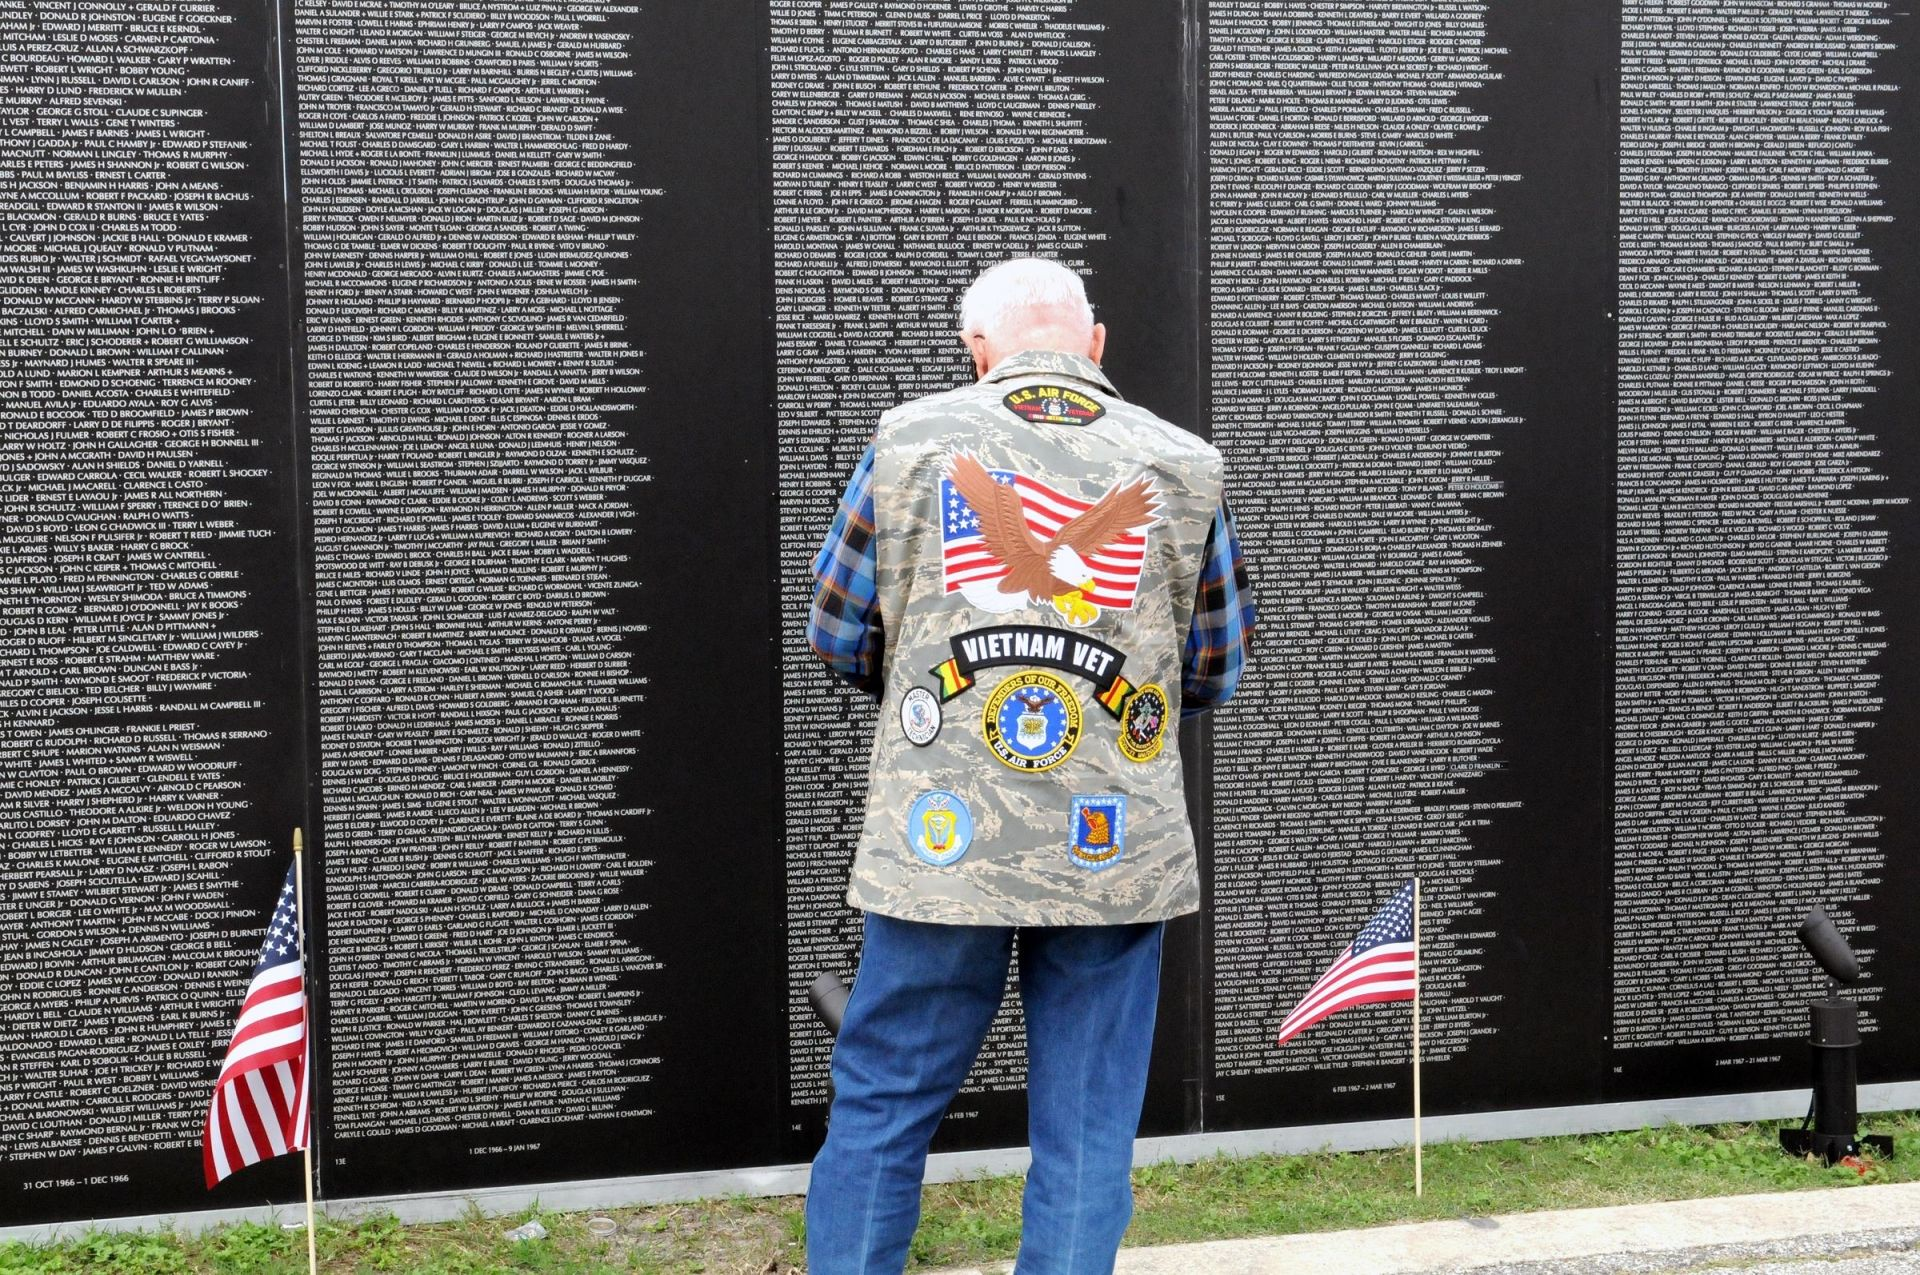 Pin by Butler County Tourism on Events American veterans